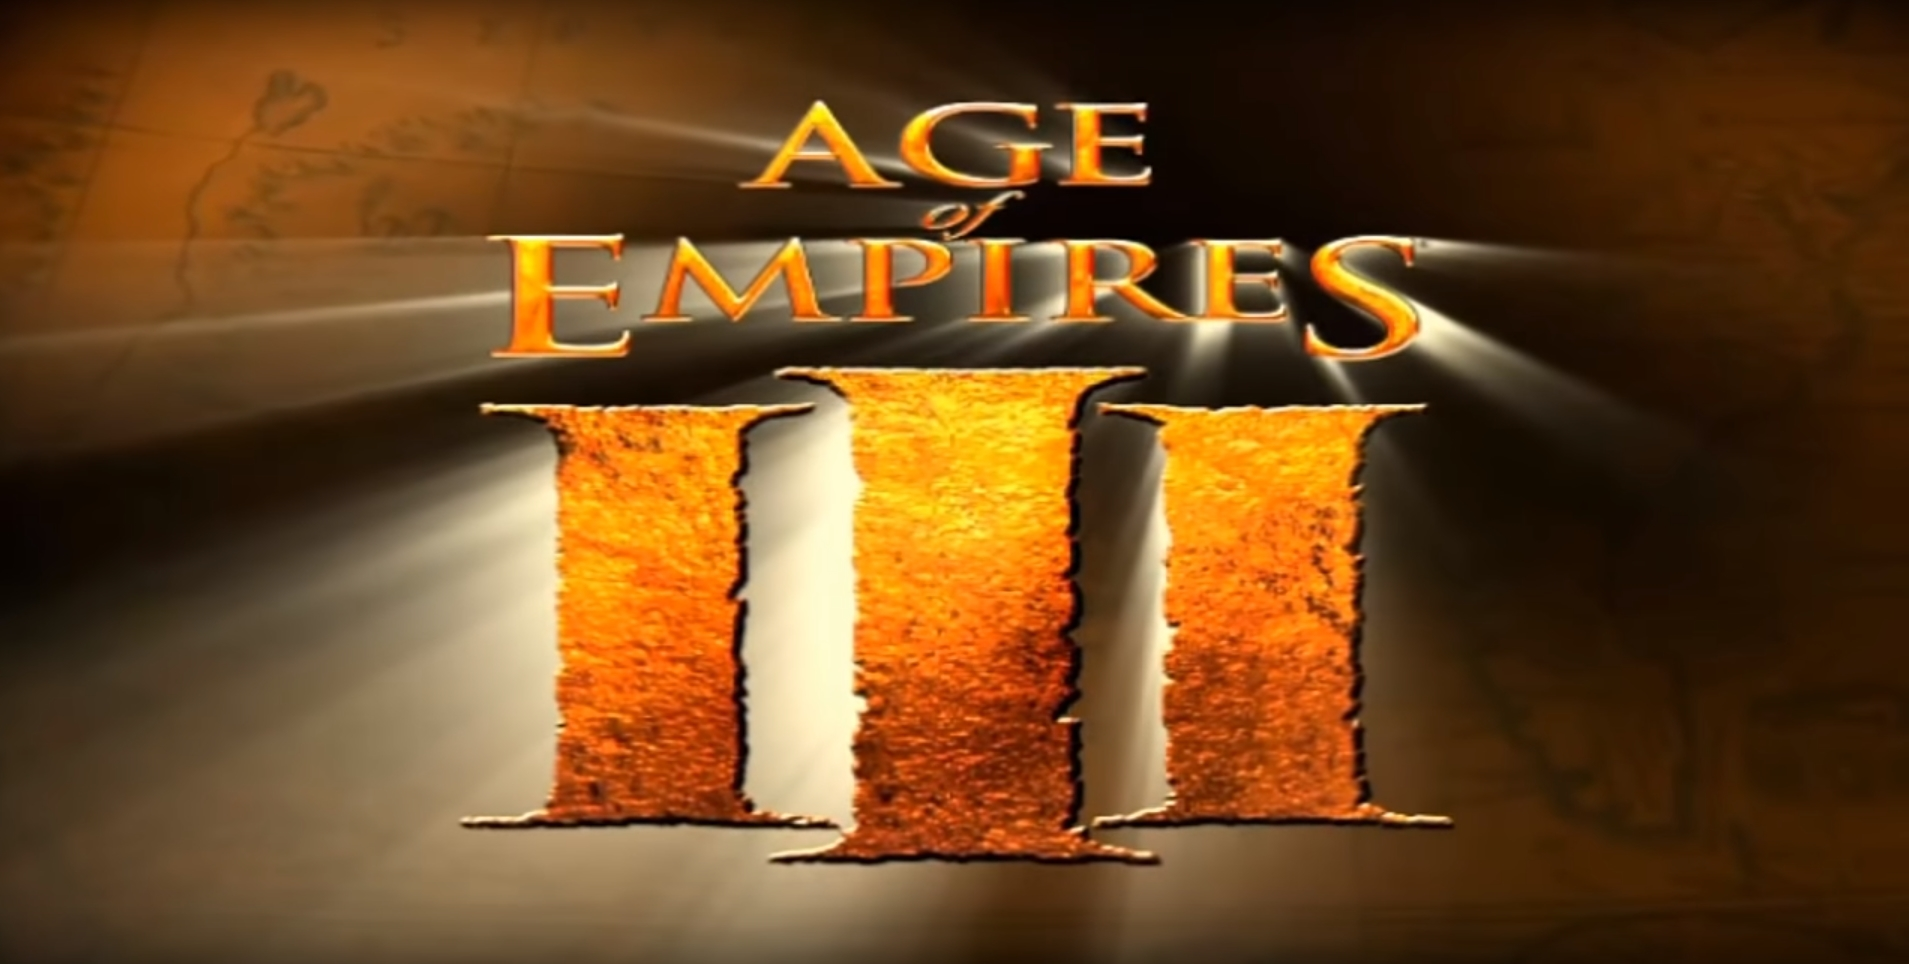 Age Of Empires III Announces New Partners With iNcog To Announce New Empire Cup Tournament